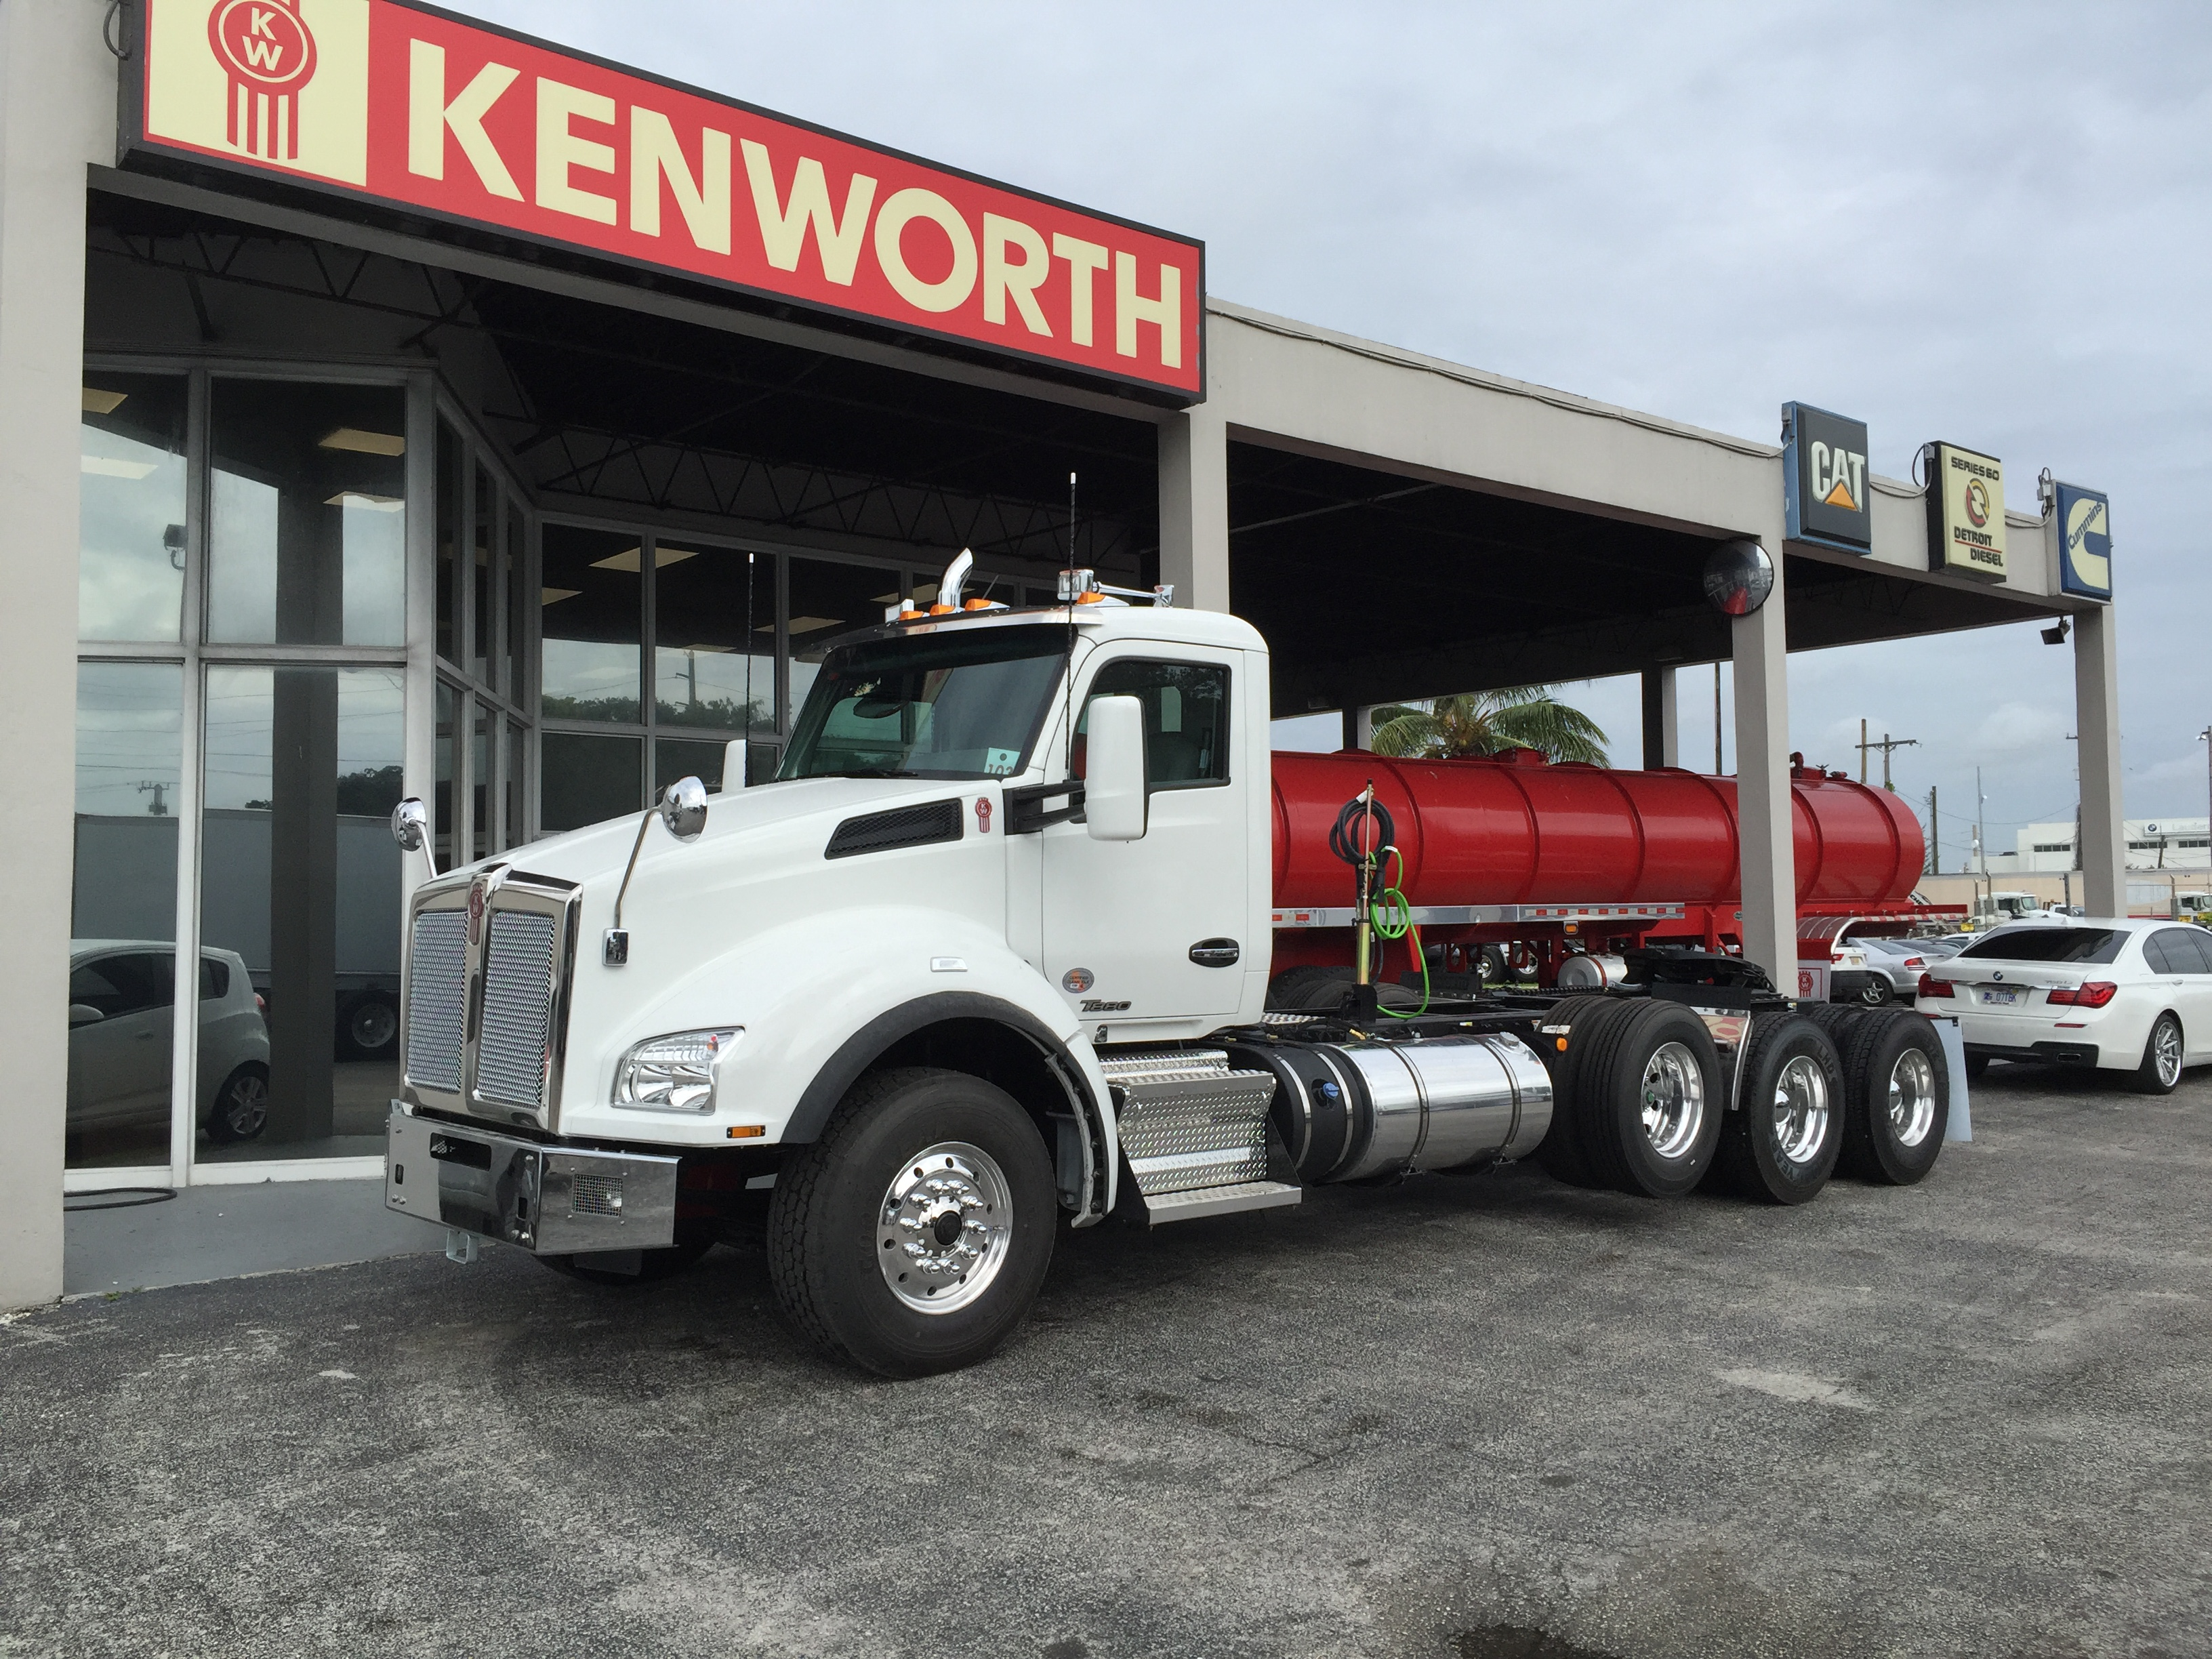 Kenworth of South Florida